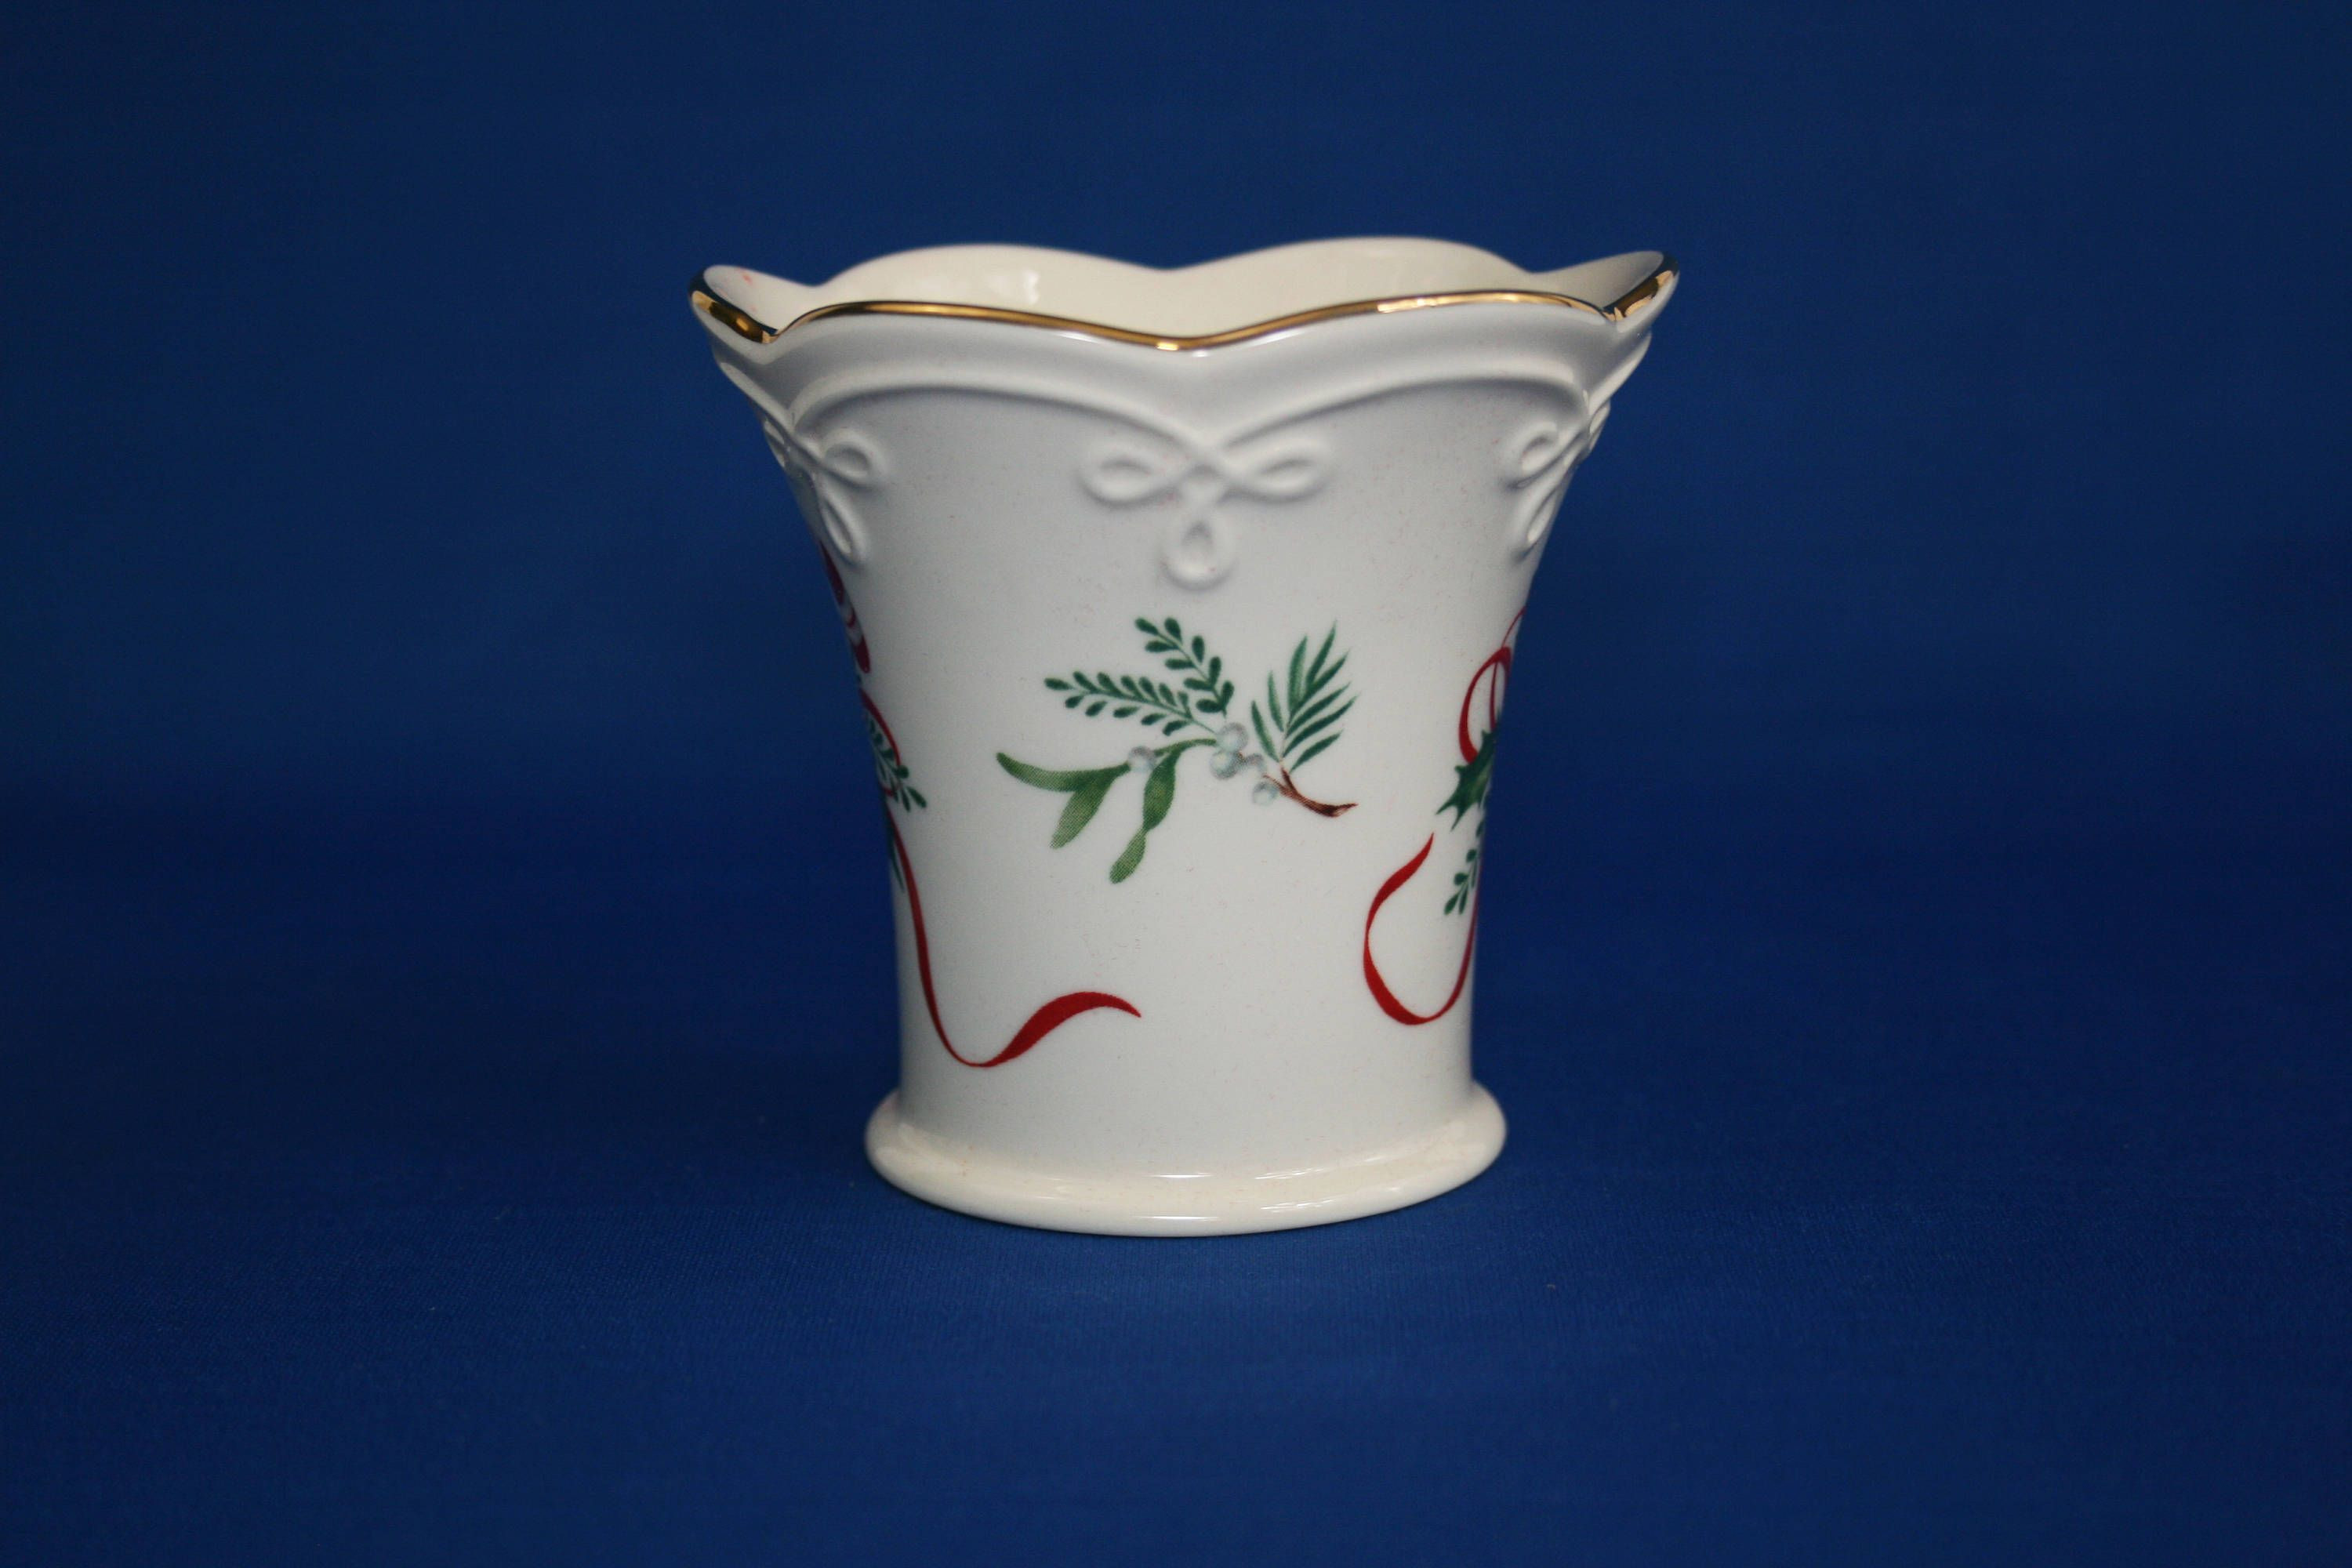 Lenox Holiday Vase Of 26 Lenox Small Vase the Weekly World Inside Vintage Lenox China Candy Cane Tea Light Fluted Cup Candle Holder